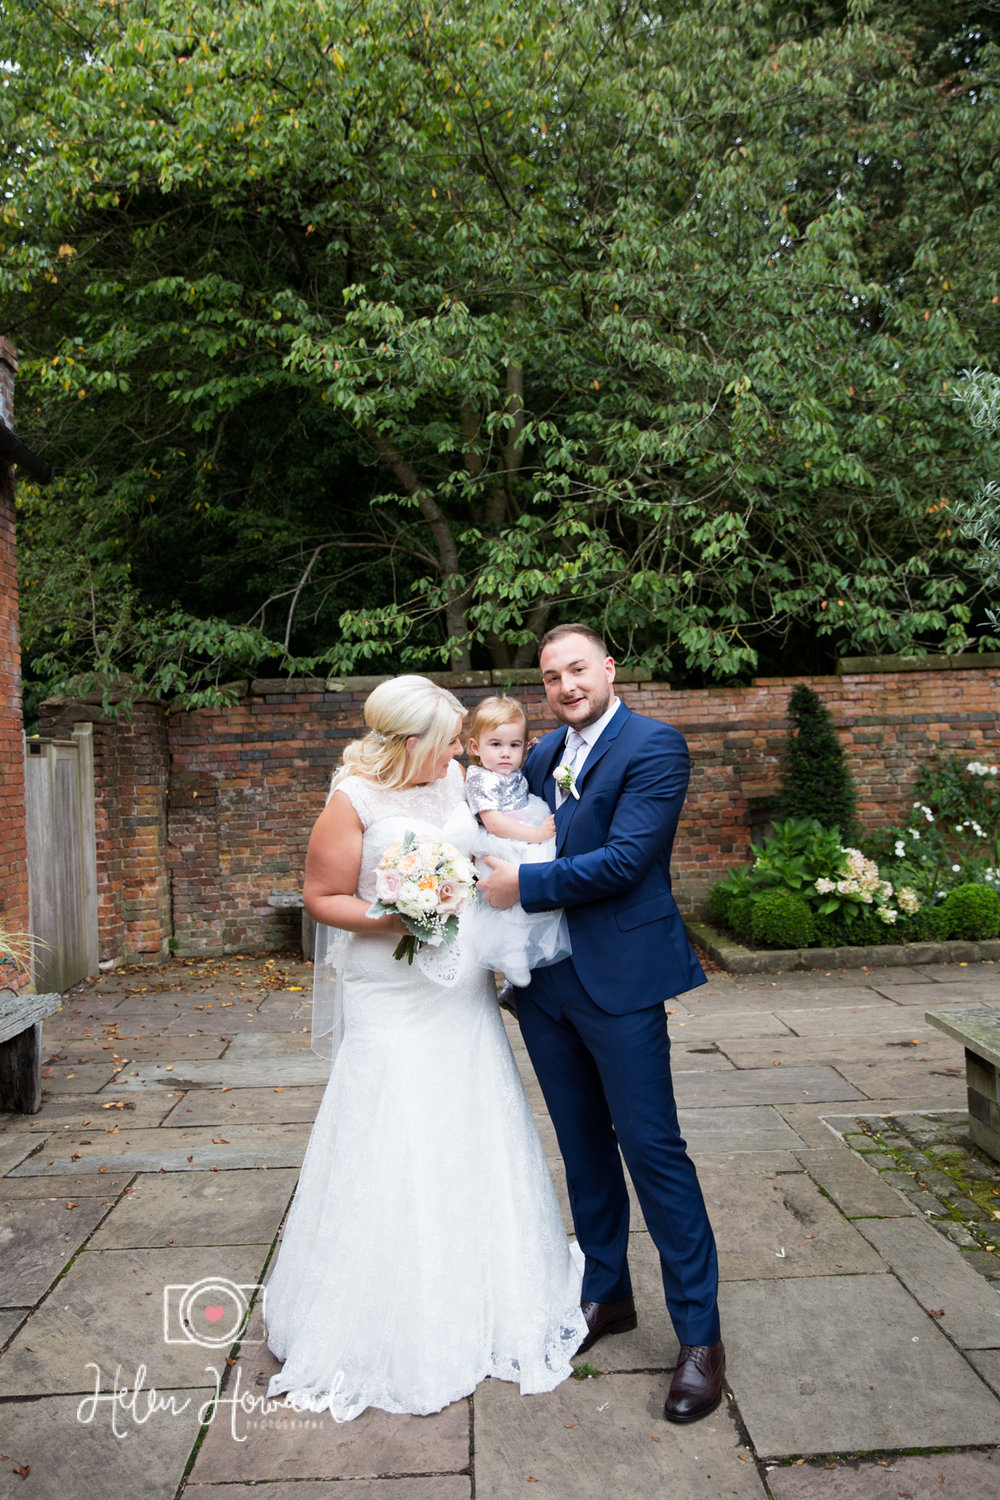 Shustoke Farm Barns Wedding Photography by Helen Howard-25.jpg